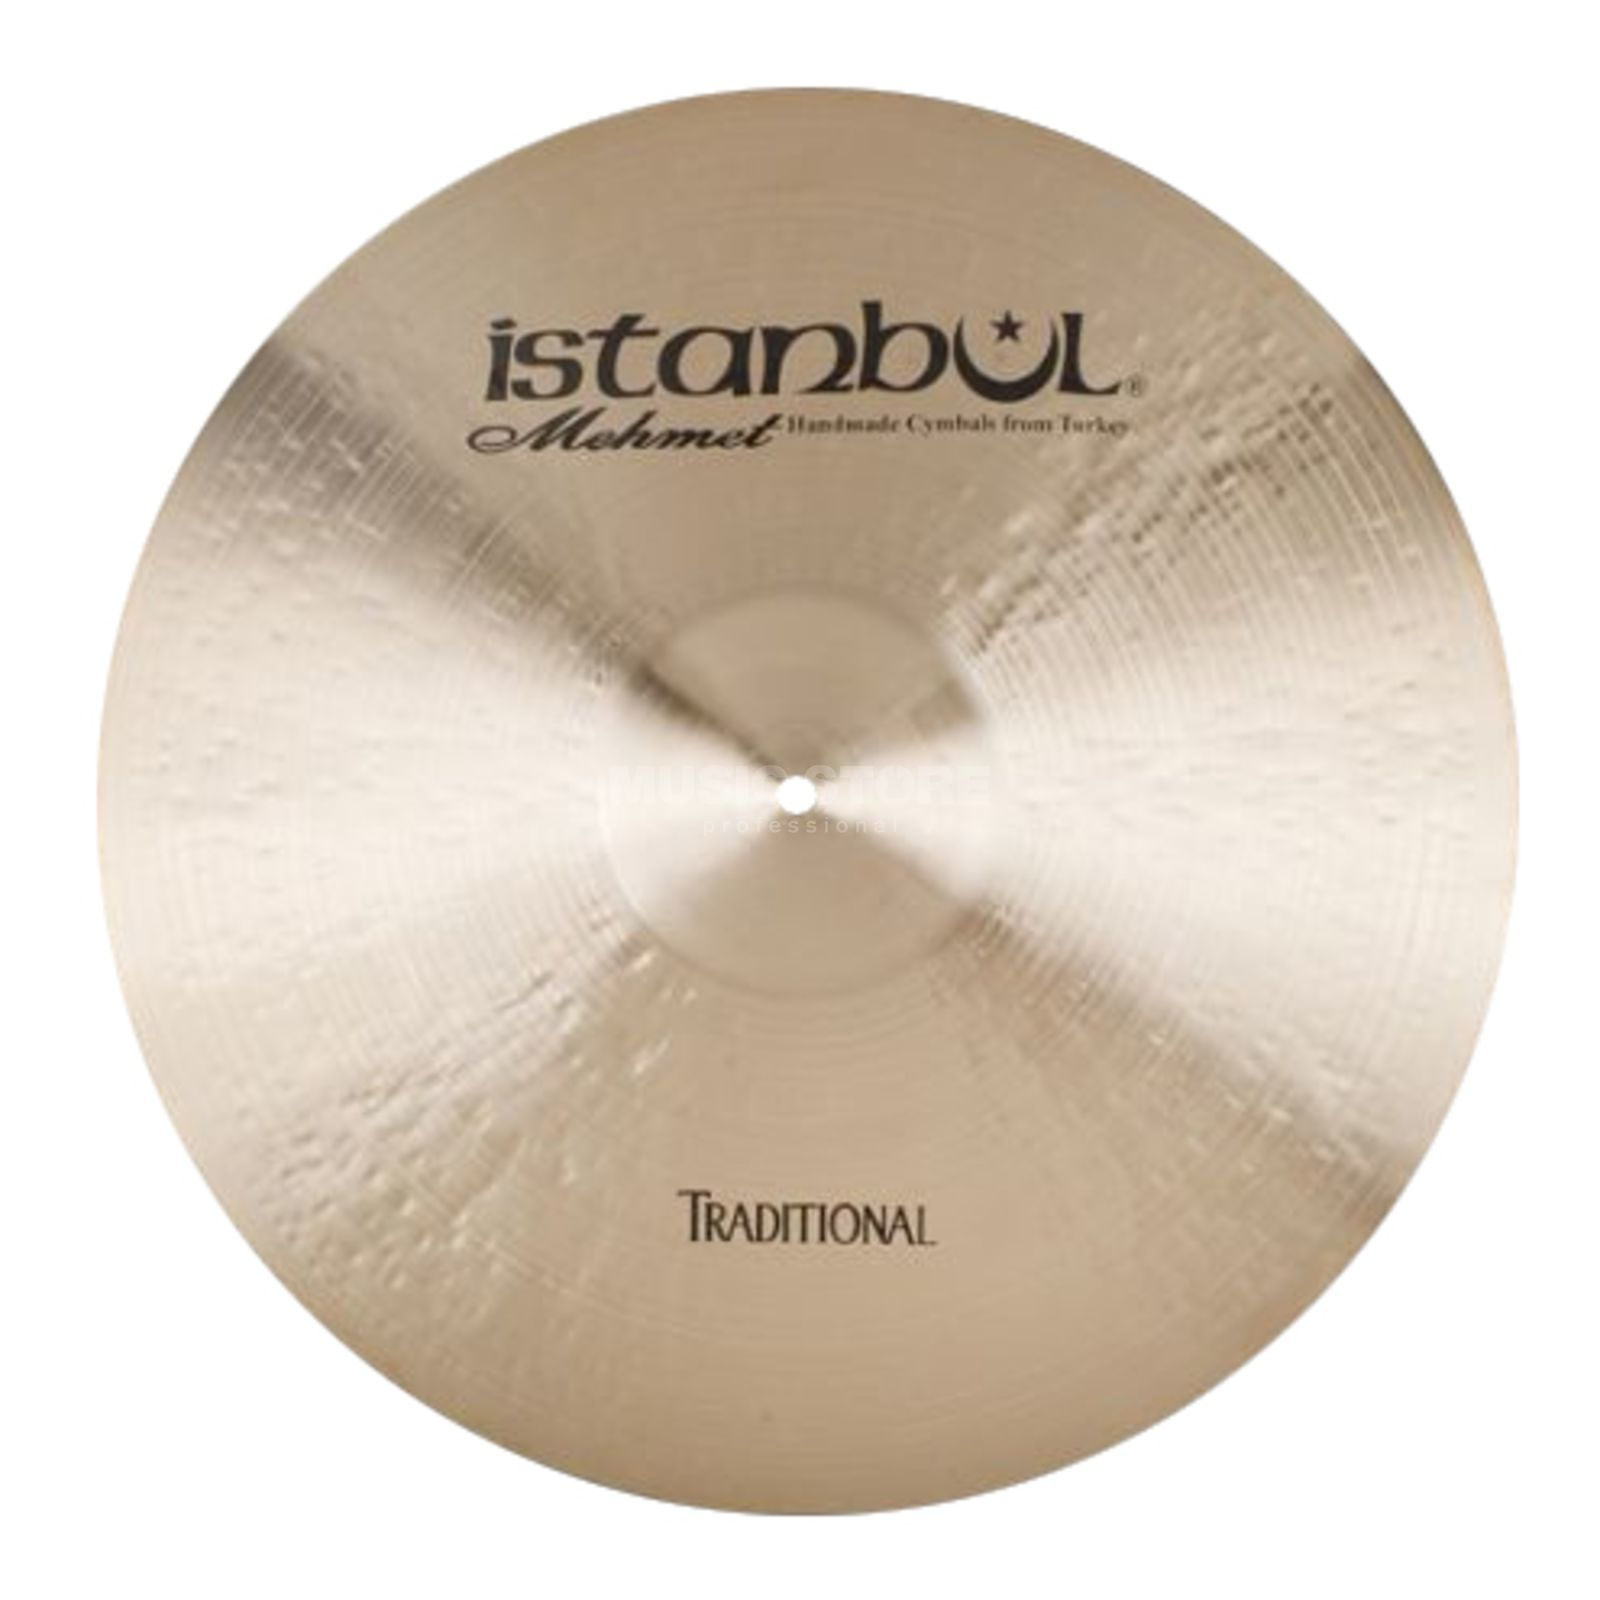 "Istanbul Traditional Original Ride 20"", ROR21 Produktbillede"